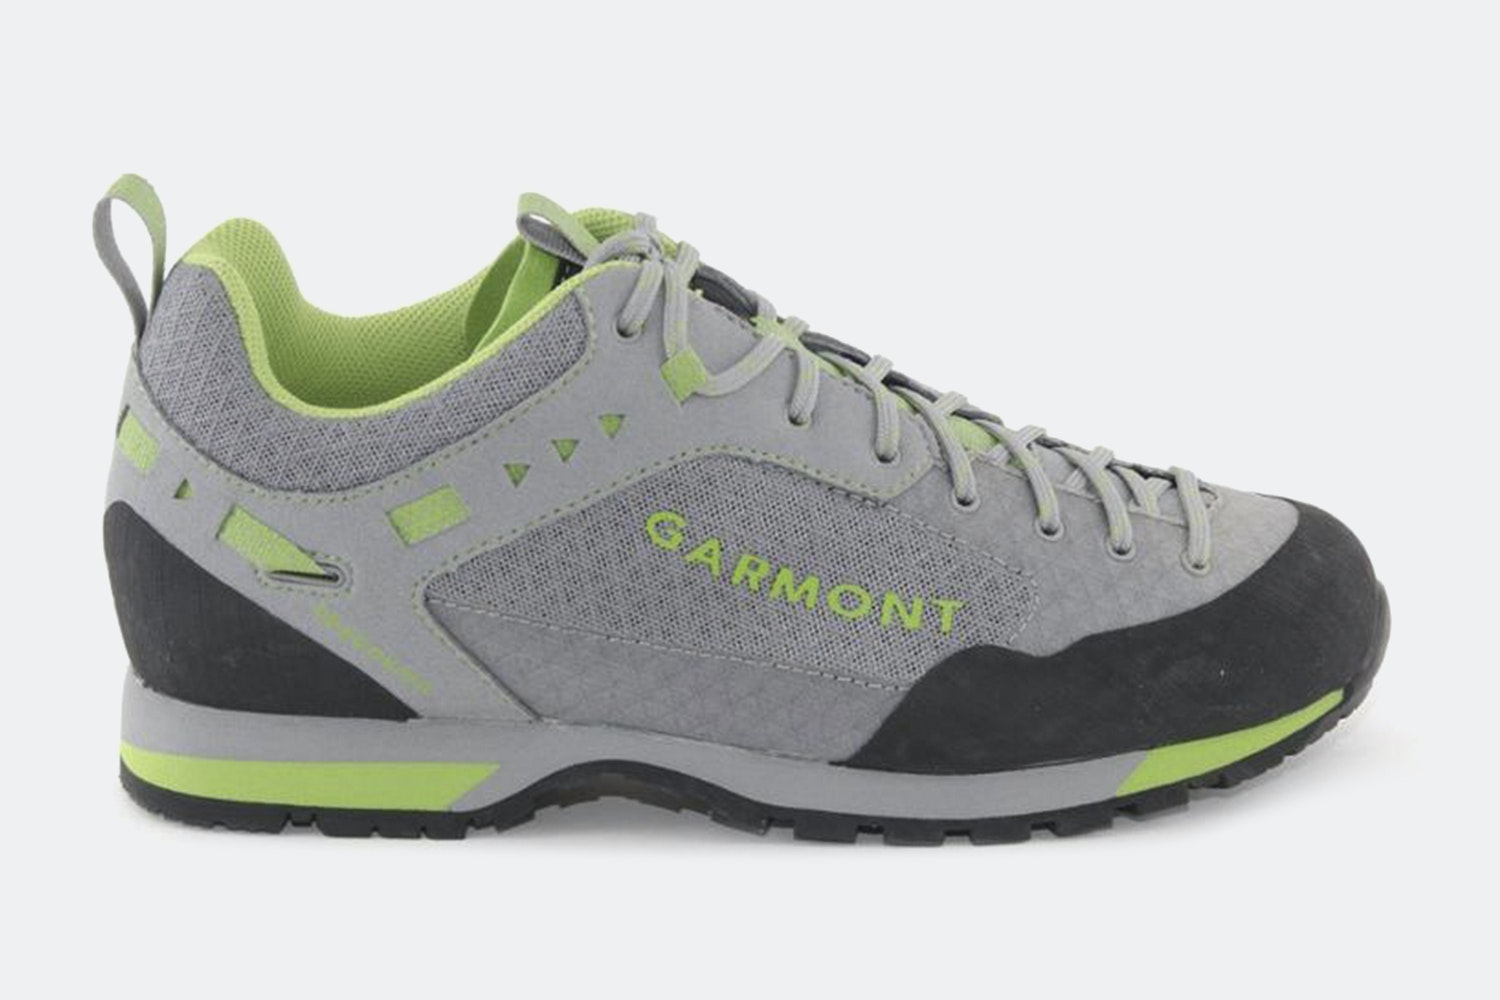 Men's – Grey/Green